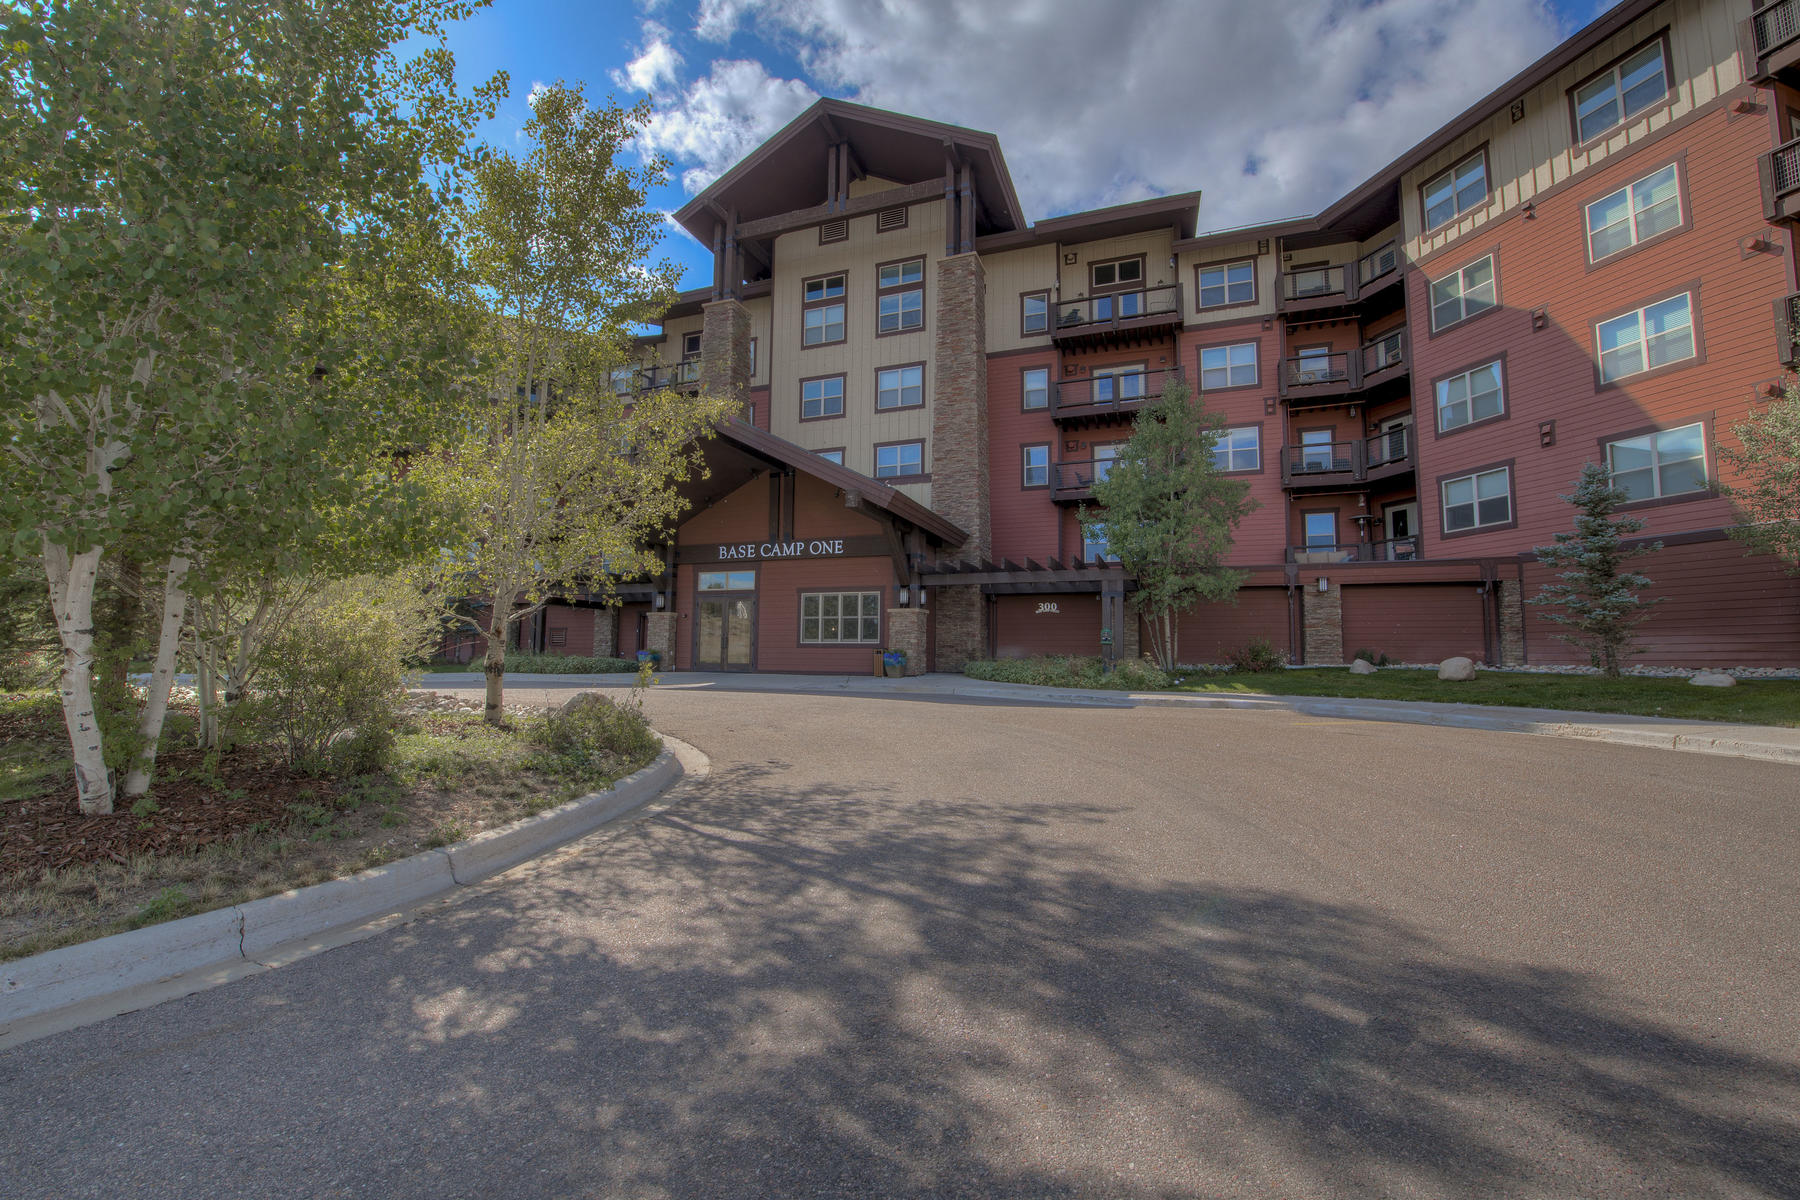 Condominiums for Sale at Steps Away from Ski Lifts! 300 Basecamp Circle 106 Granby, Colorado 80446 United States